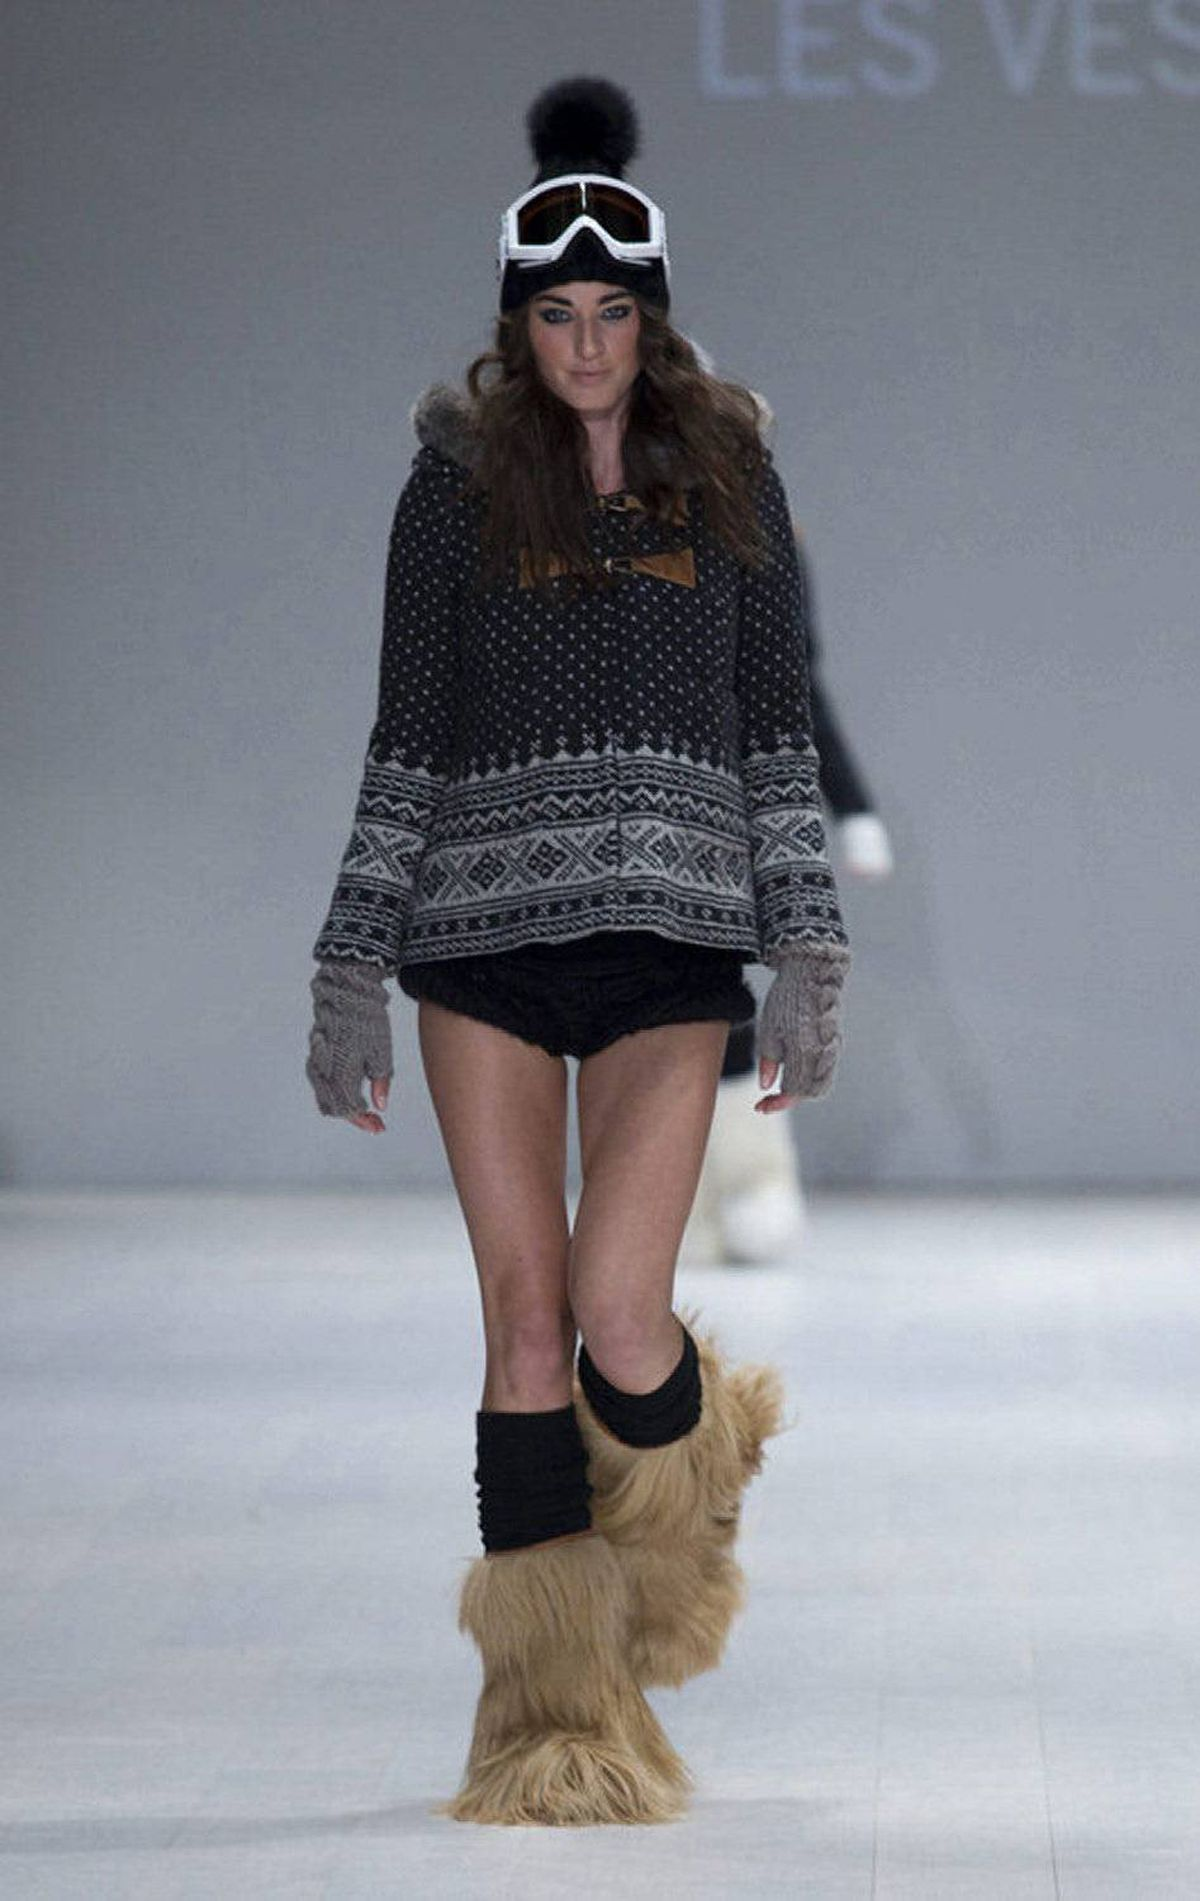 Ah winter: Time to put on ... a cozy sweater, hat, boots and run around in the snow. Without pants. It's a hoser's fantasy.